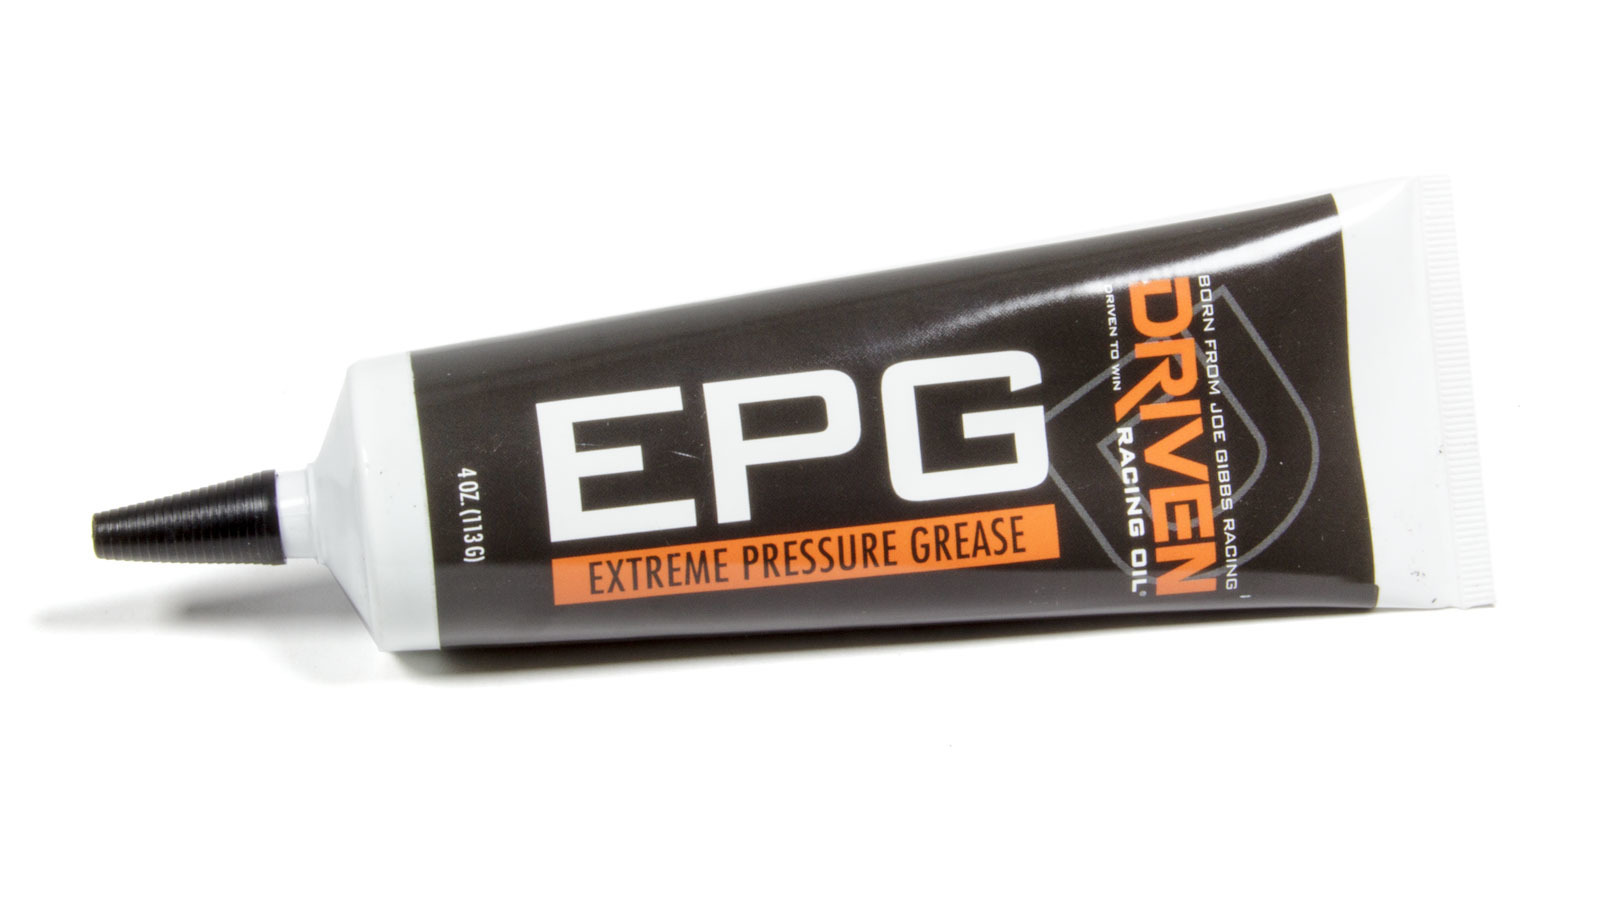 Driven Racing Oil Extreme Pressure Grease 4oz